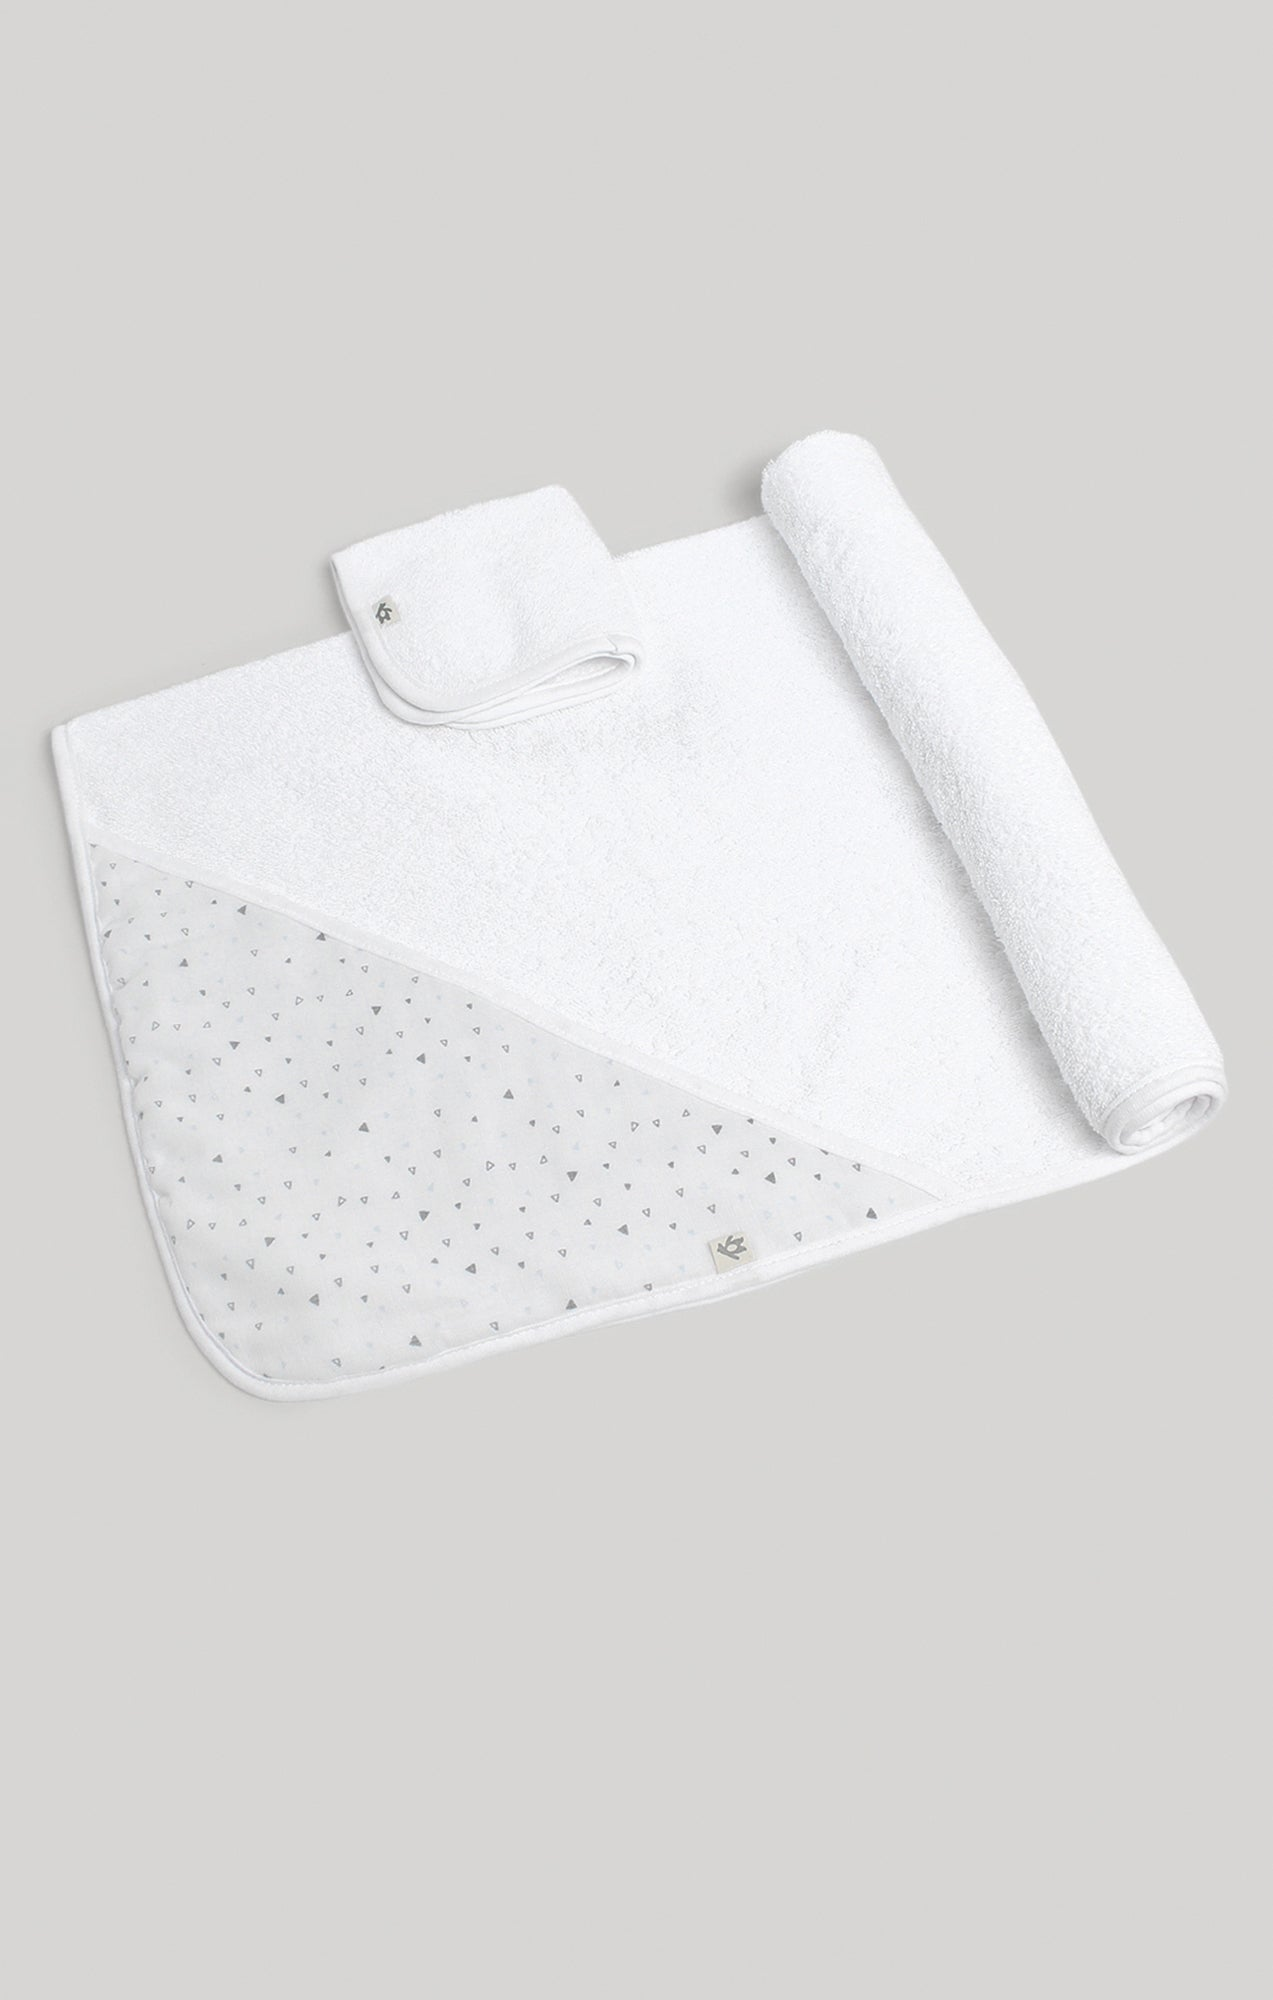 Towel Set - Triangle Hooded Towel & Terry Wash Cloth Set | Baby Accessories